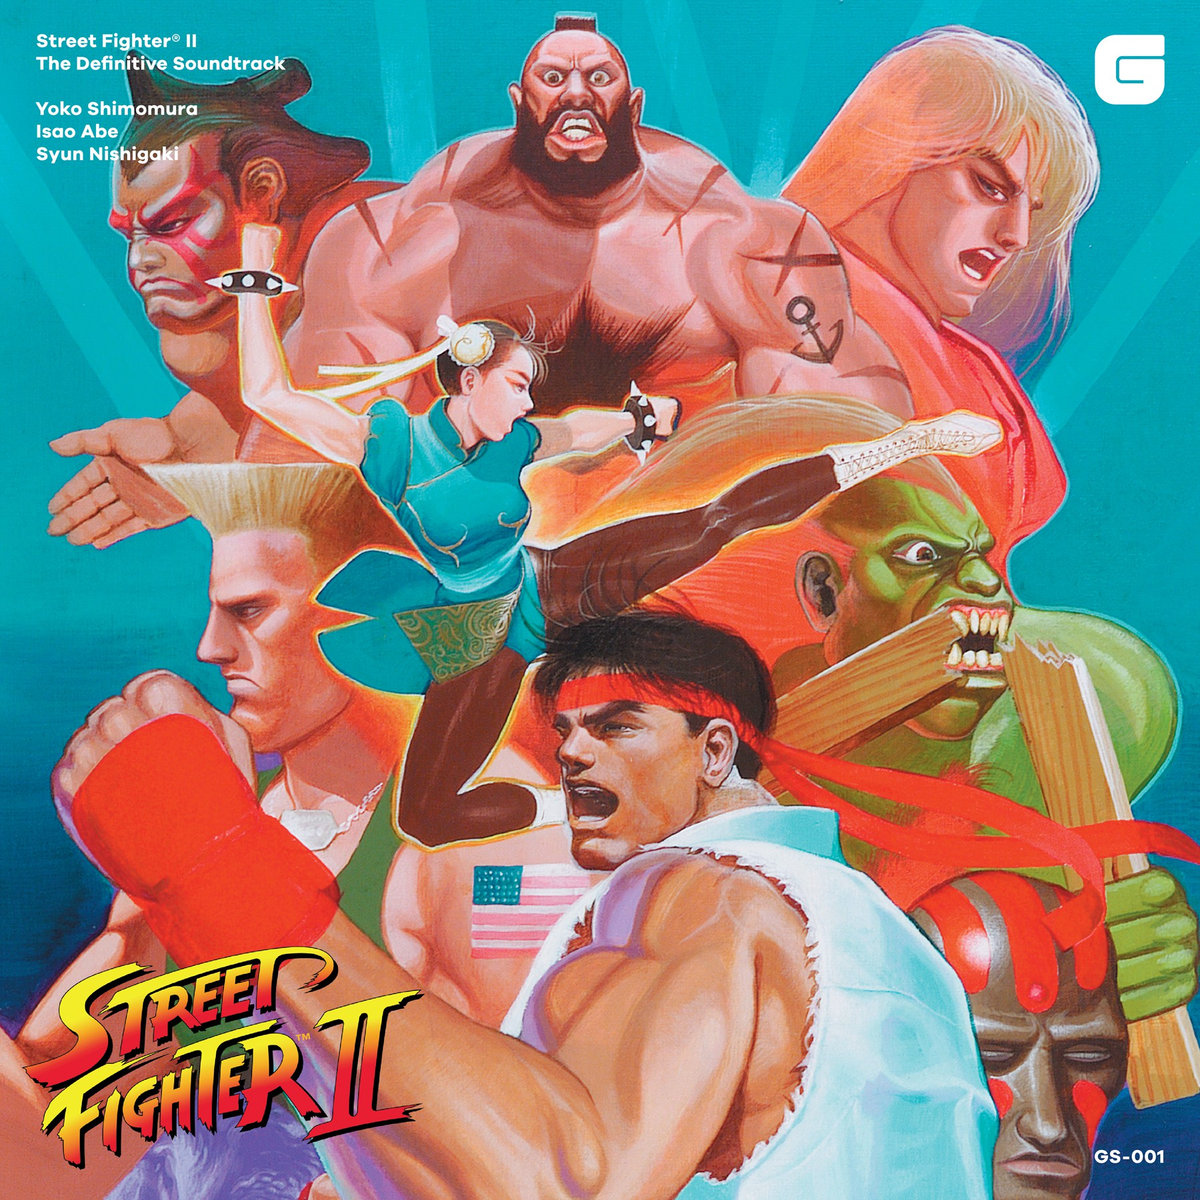 Street Fighter II The Definitive Soundtrack CD: $25 / LP: $75